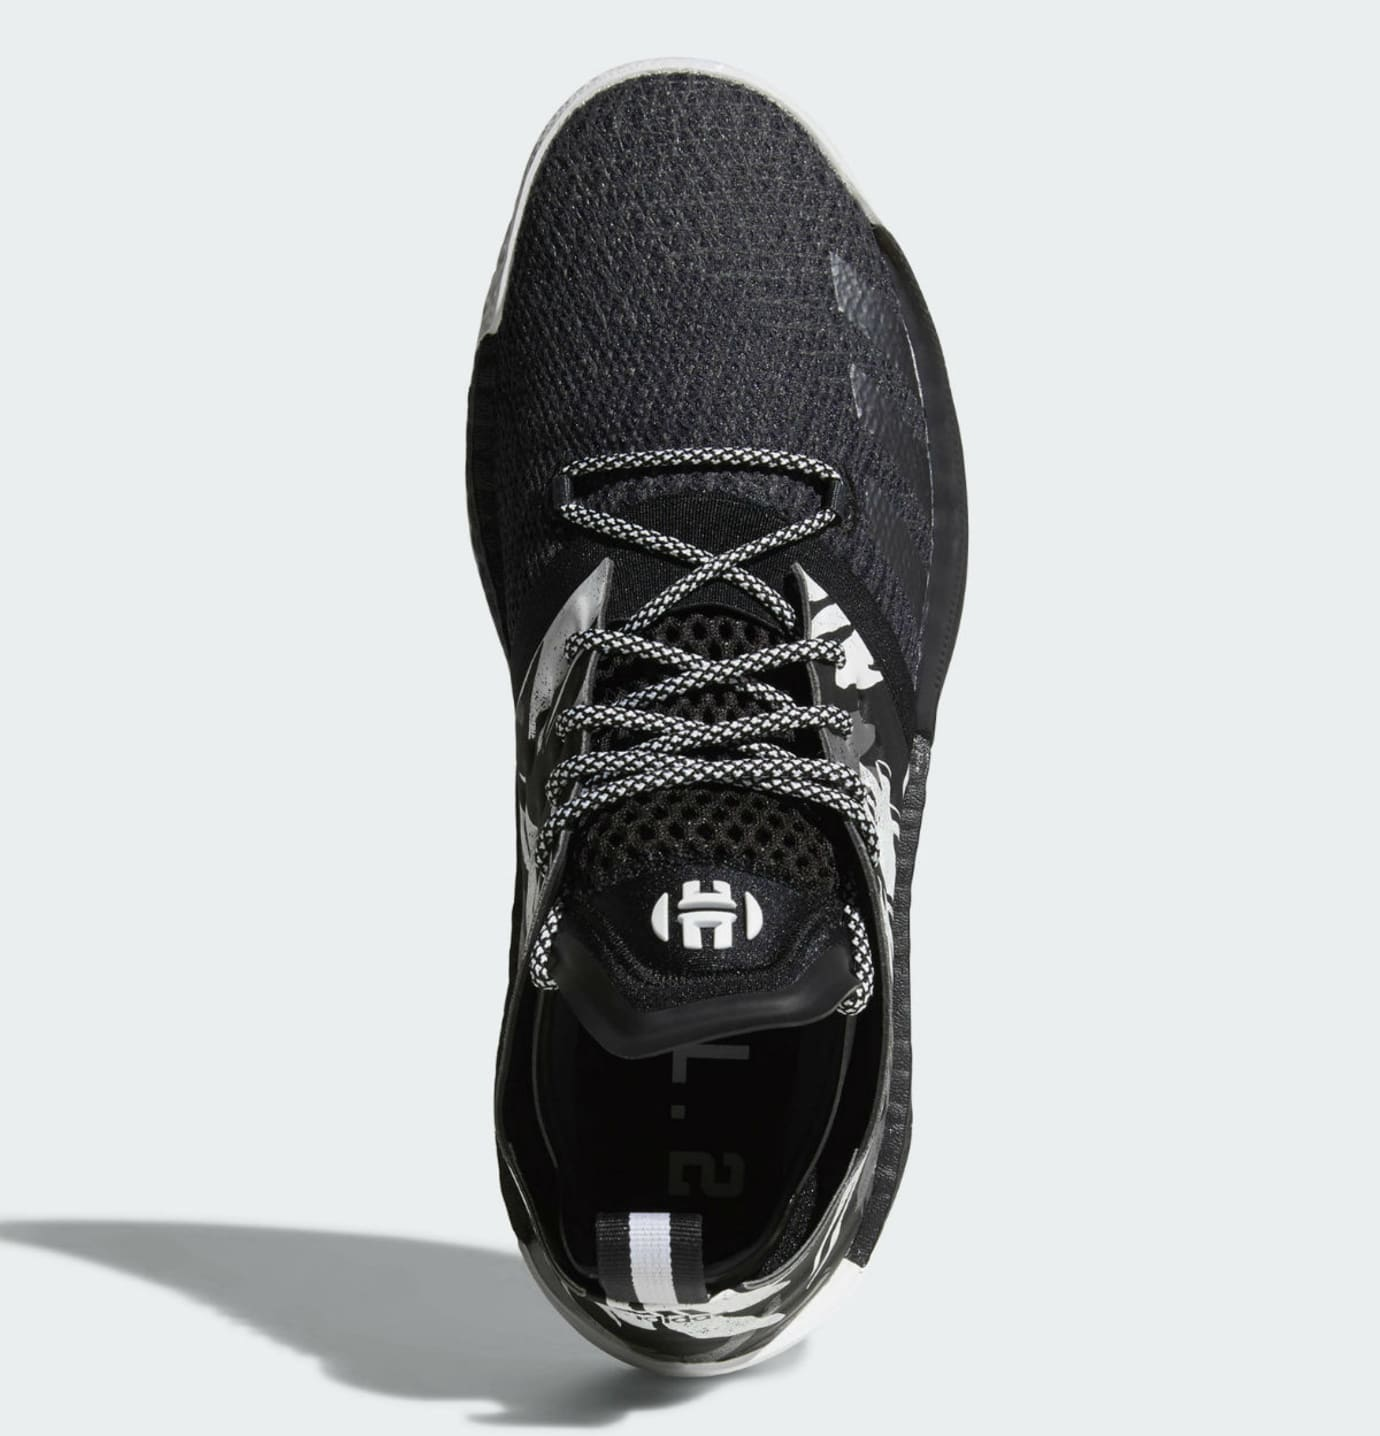 Adidas Harden Vol. 2 Traffic Jam Release Date AH2217 Top 8051ef9c9c